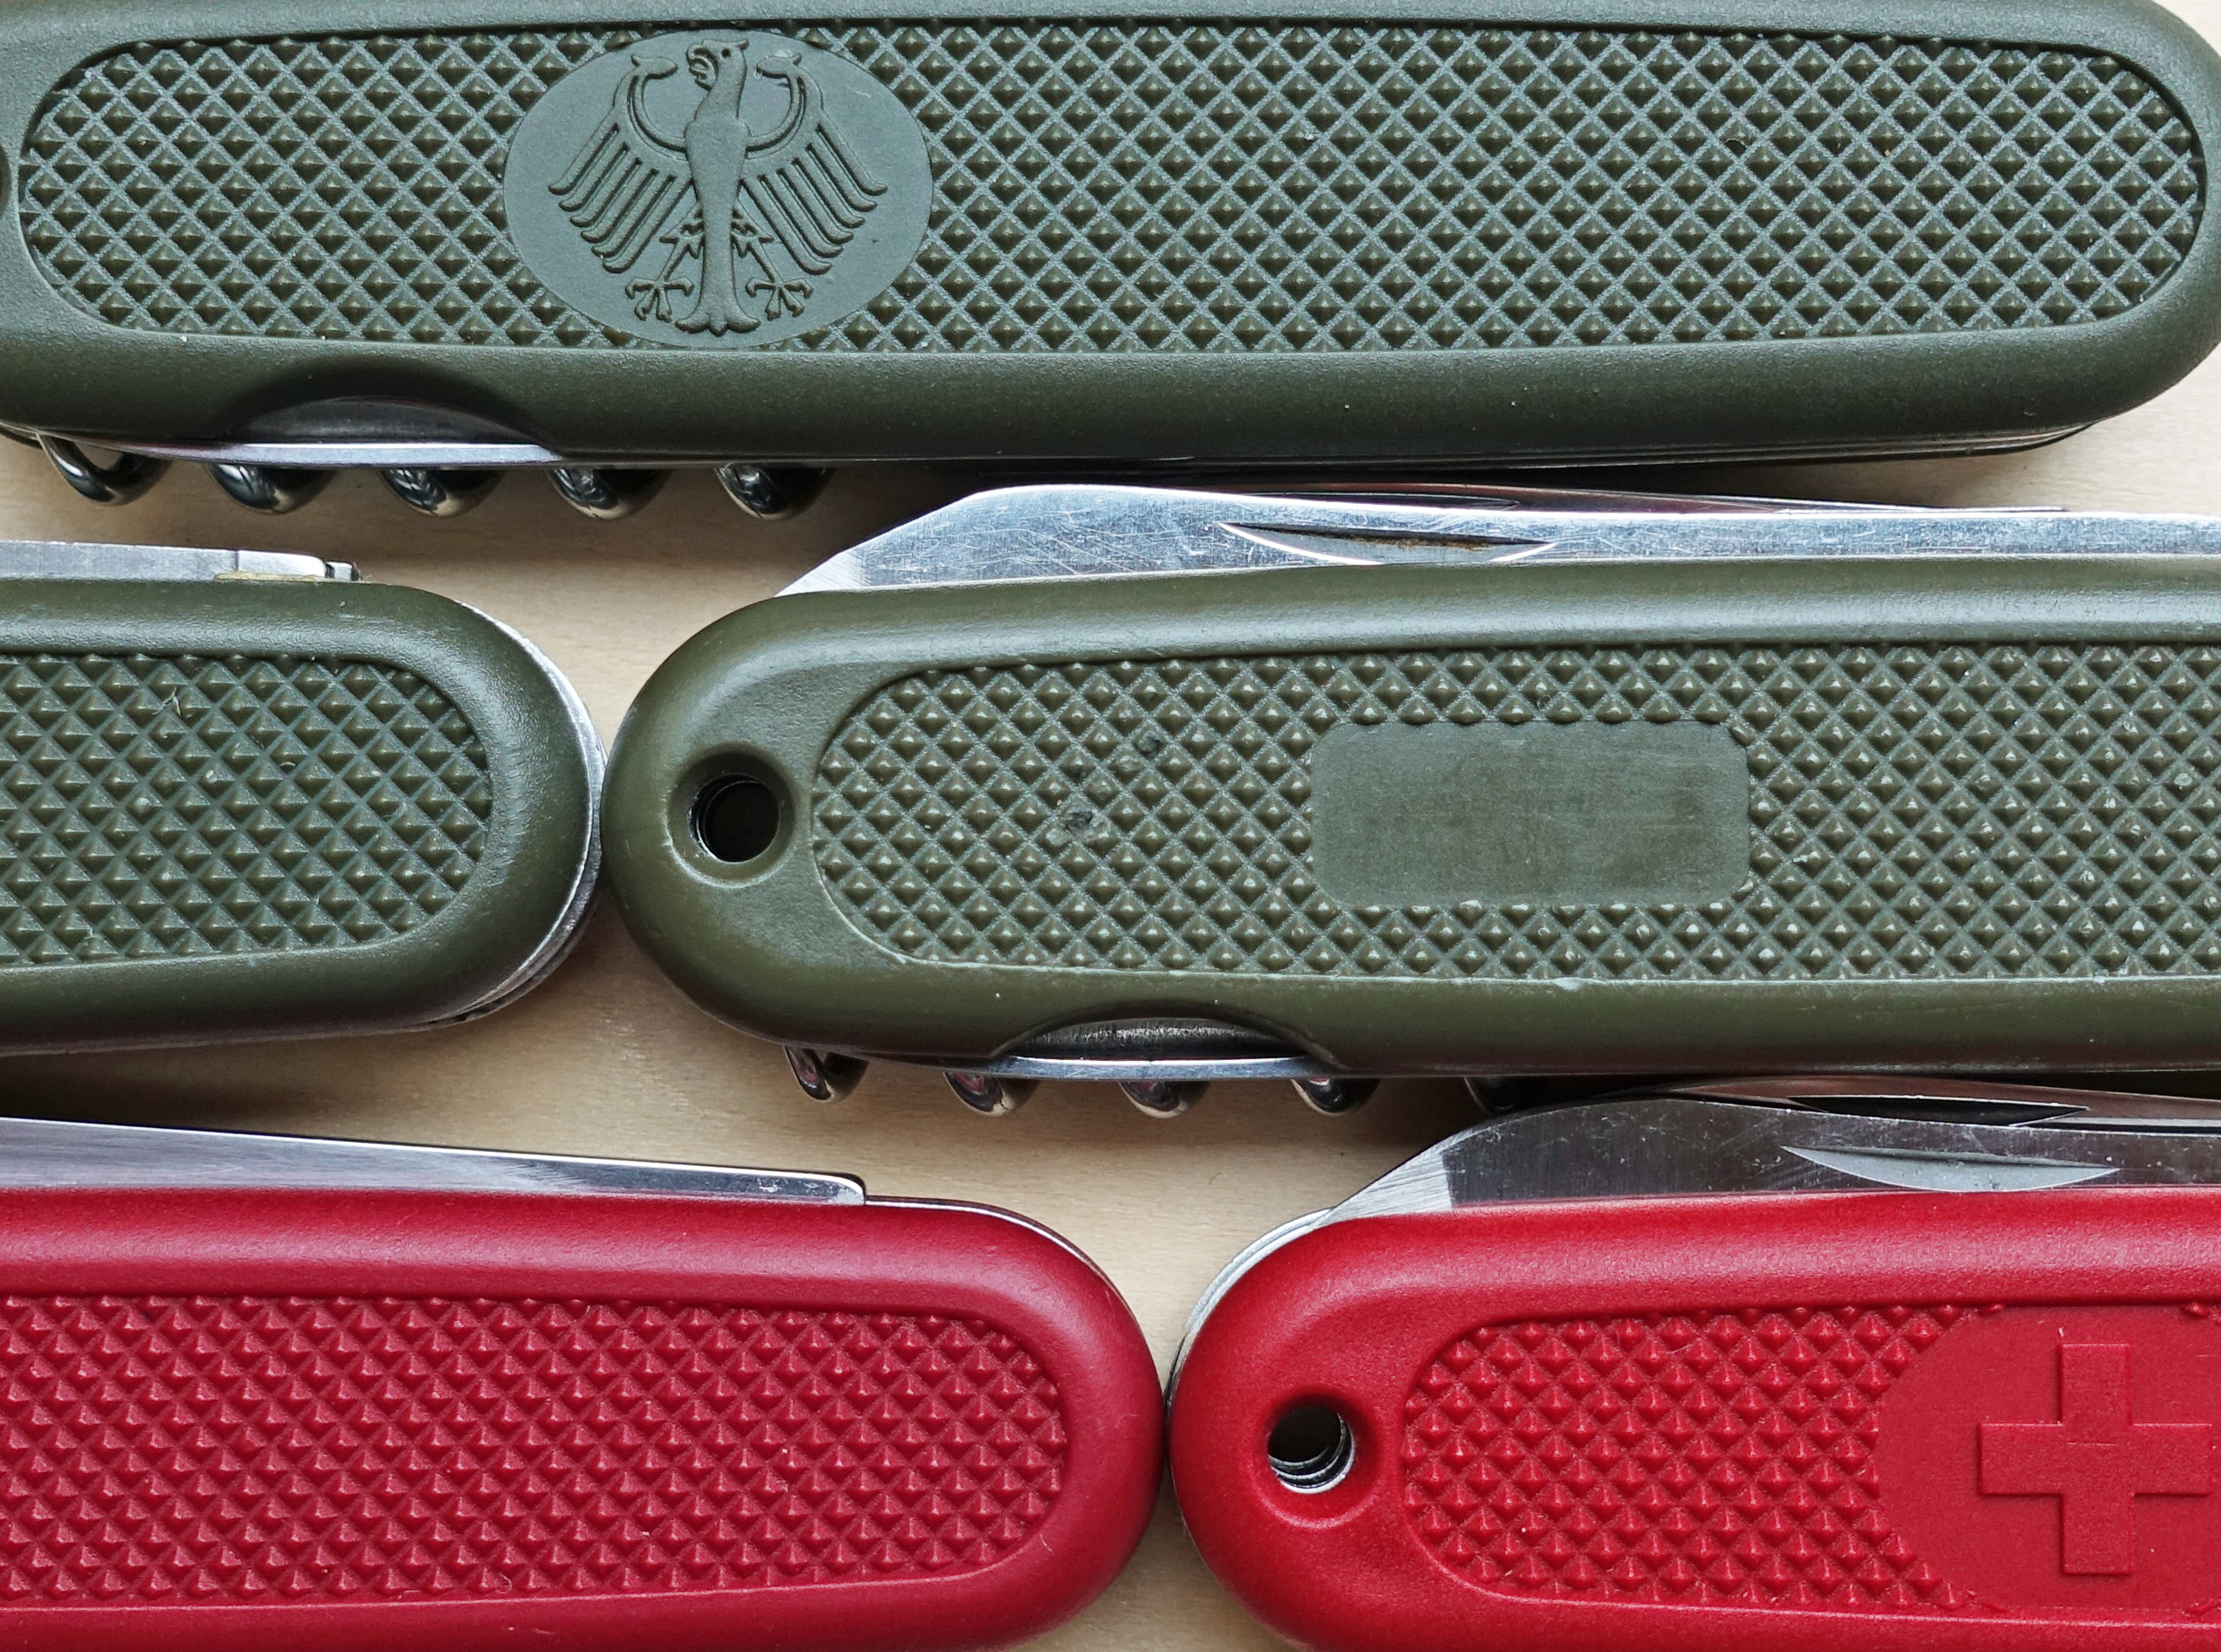 Victorinox German Army Knife and Safari derivatives